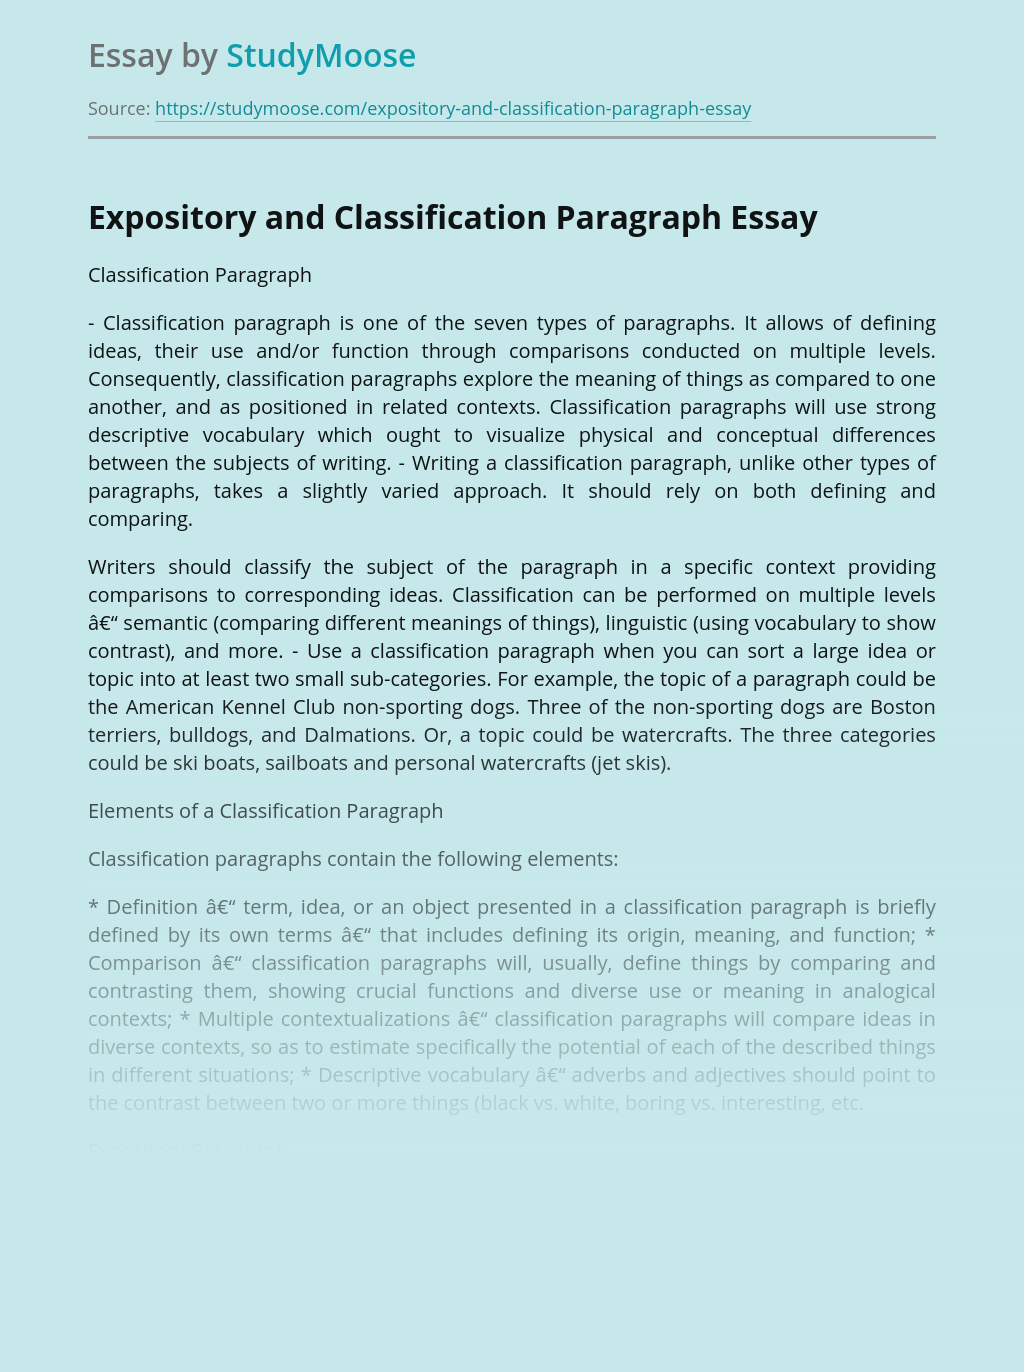 Expository and Classification Paragraph